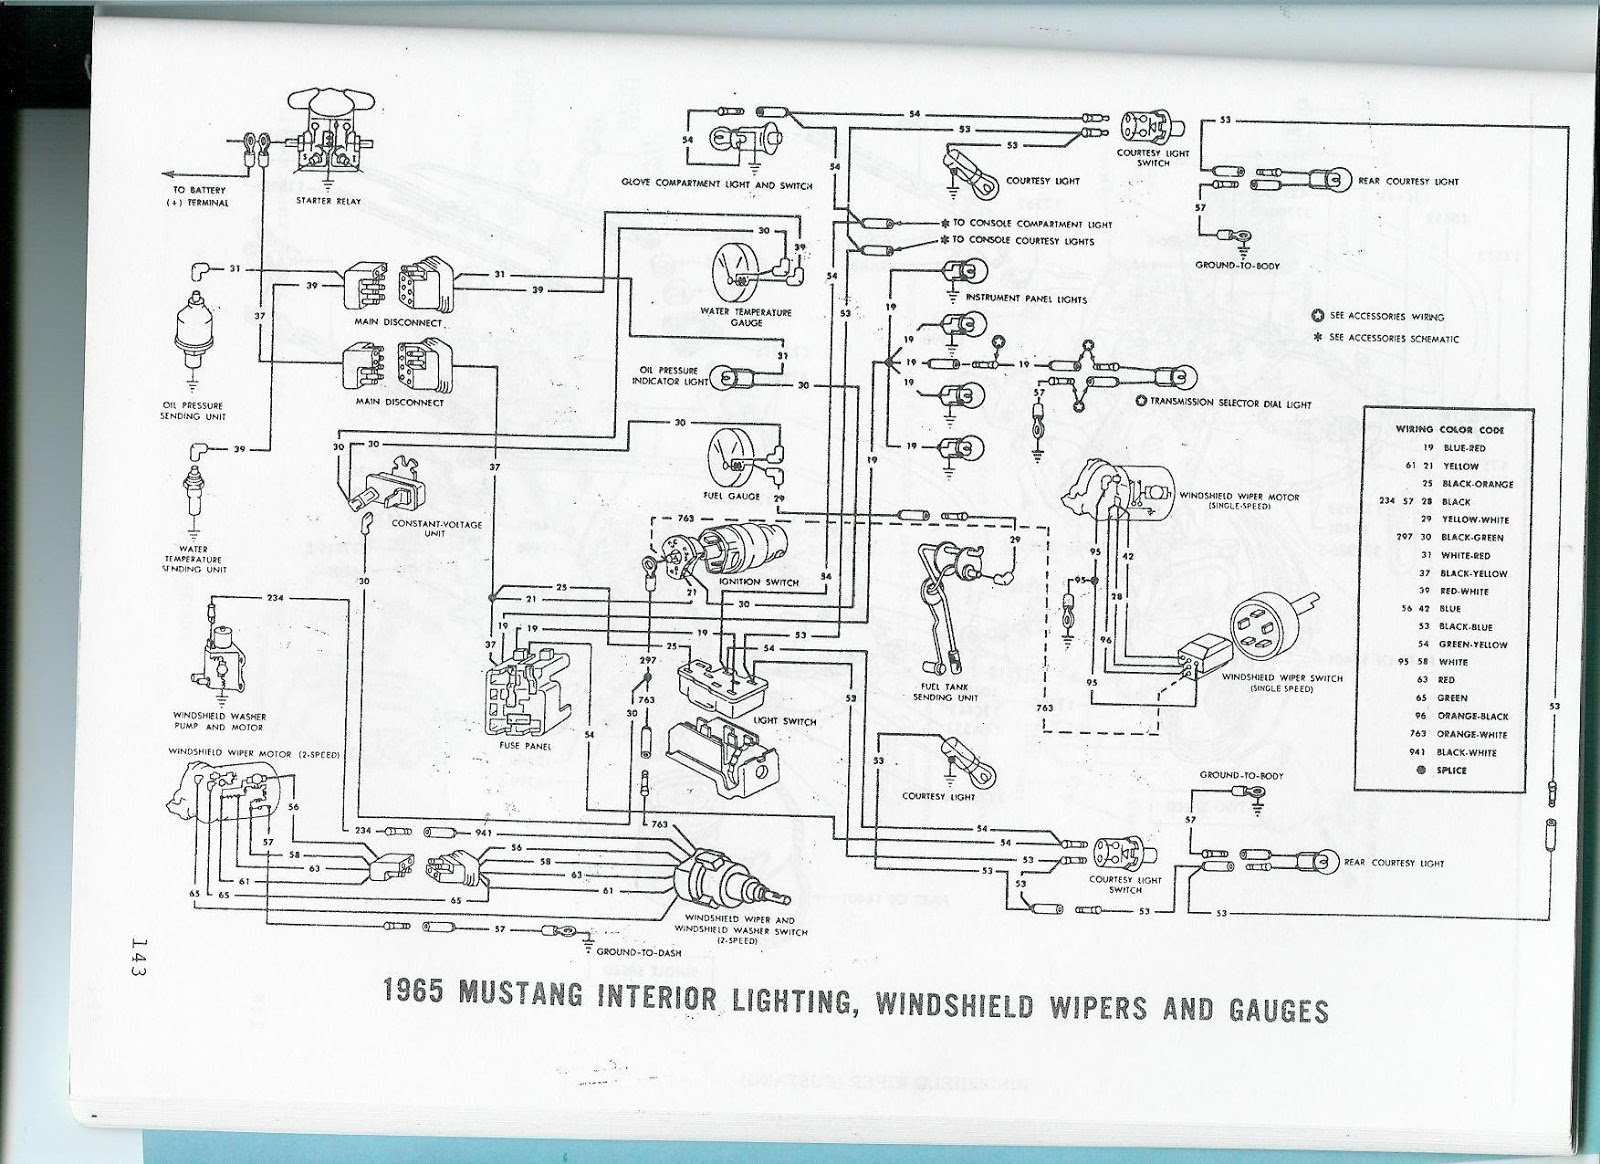 medium resolution of 1970 chevelle windshield wiper motor wiring diagram wiring library 1966 chevelle windshield wiper washer wiring diagram 65 chevelle wiper motor wiring